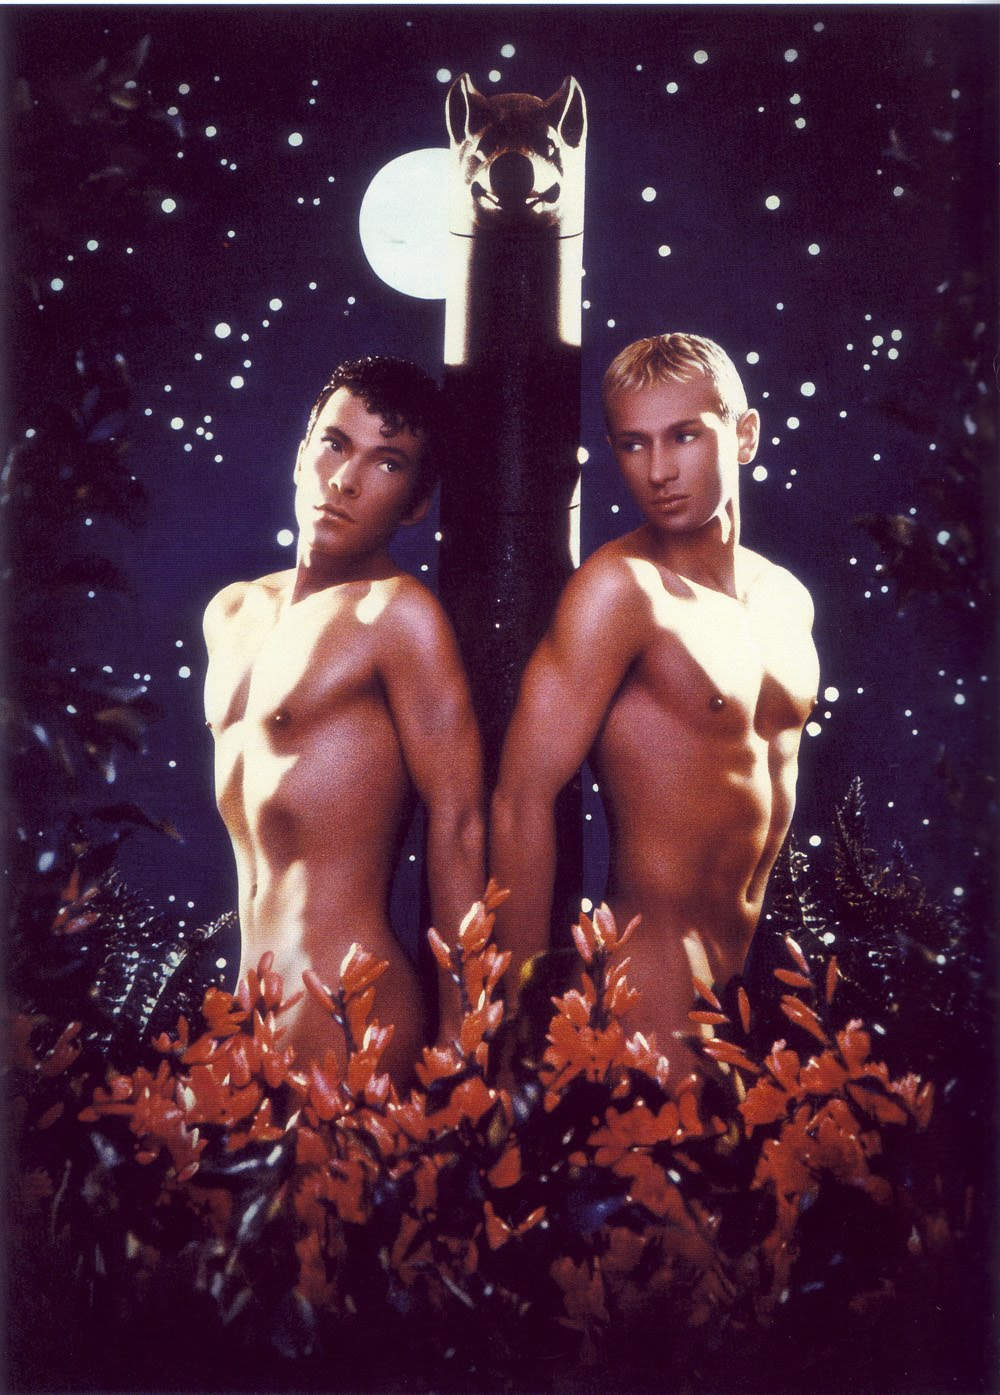 Pierre and Gilles (Self Portrait)